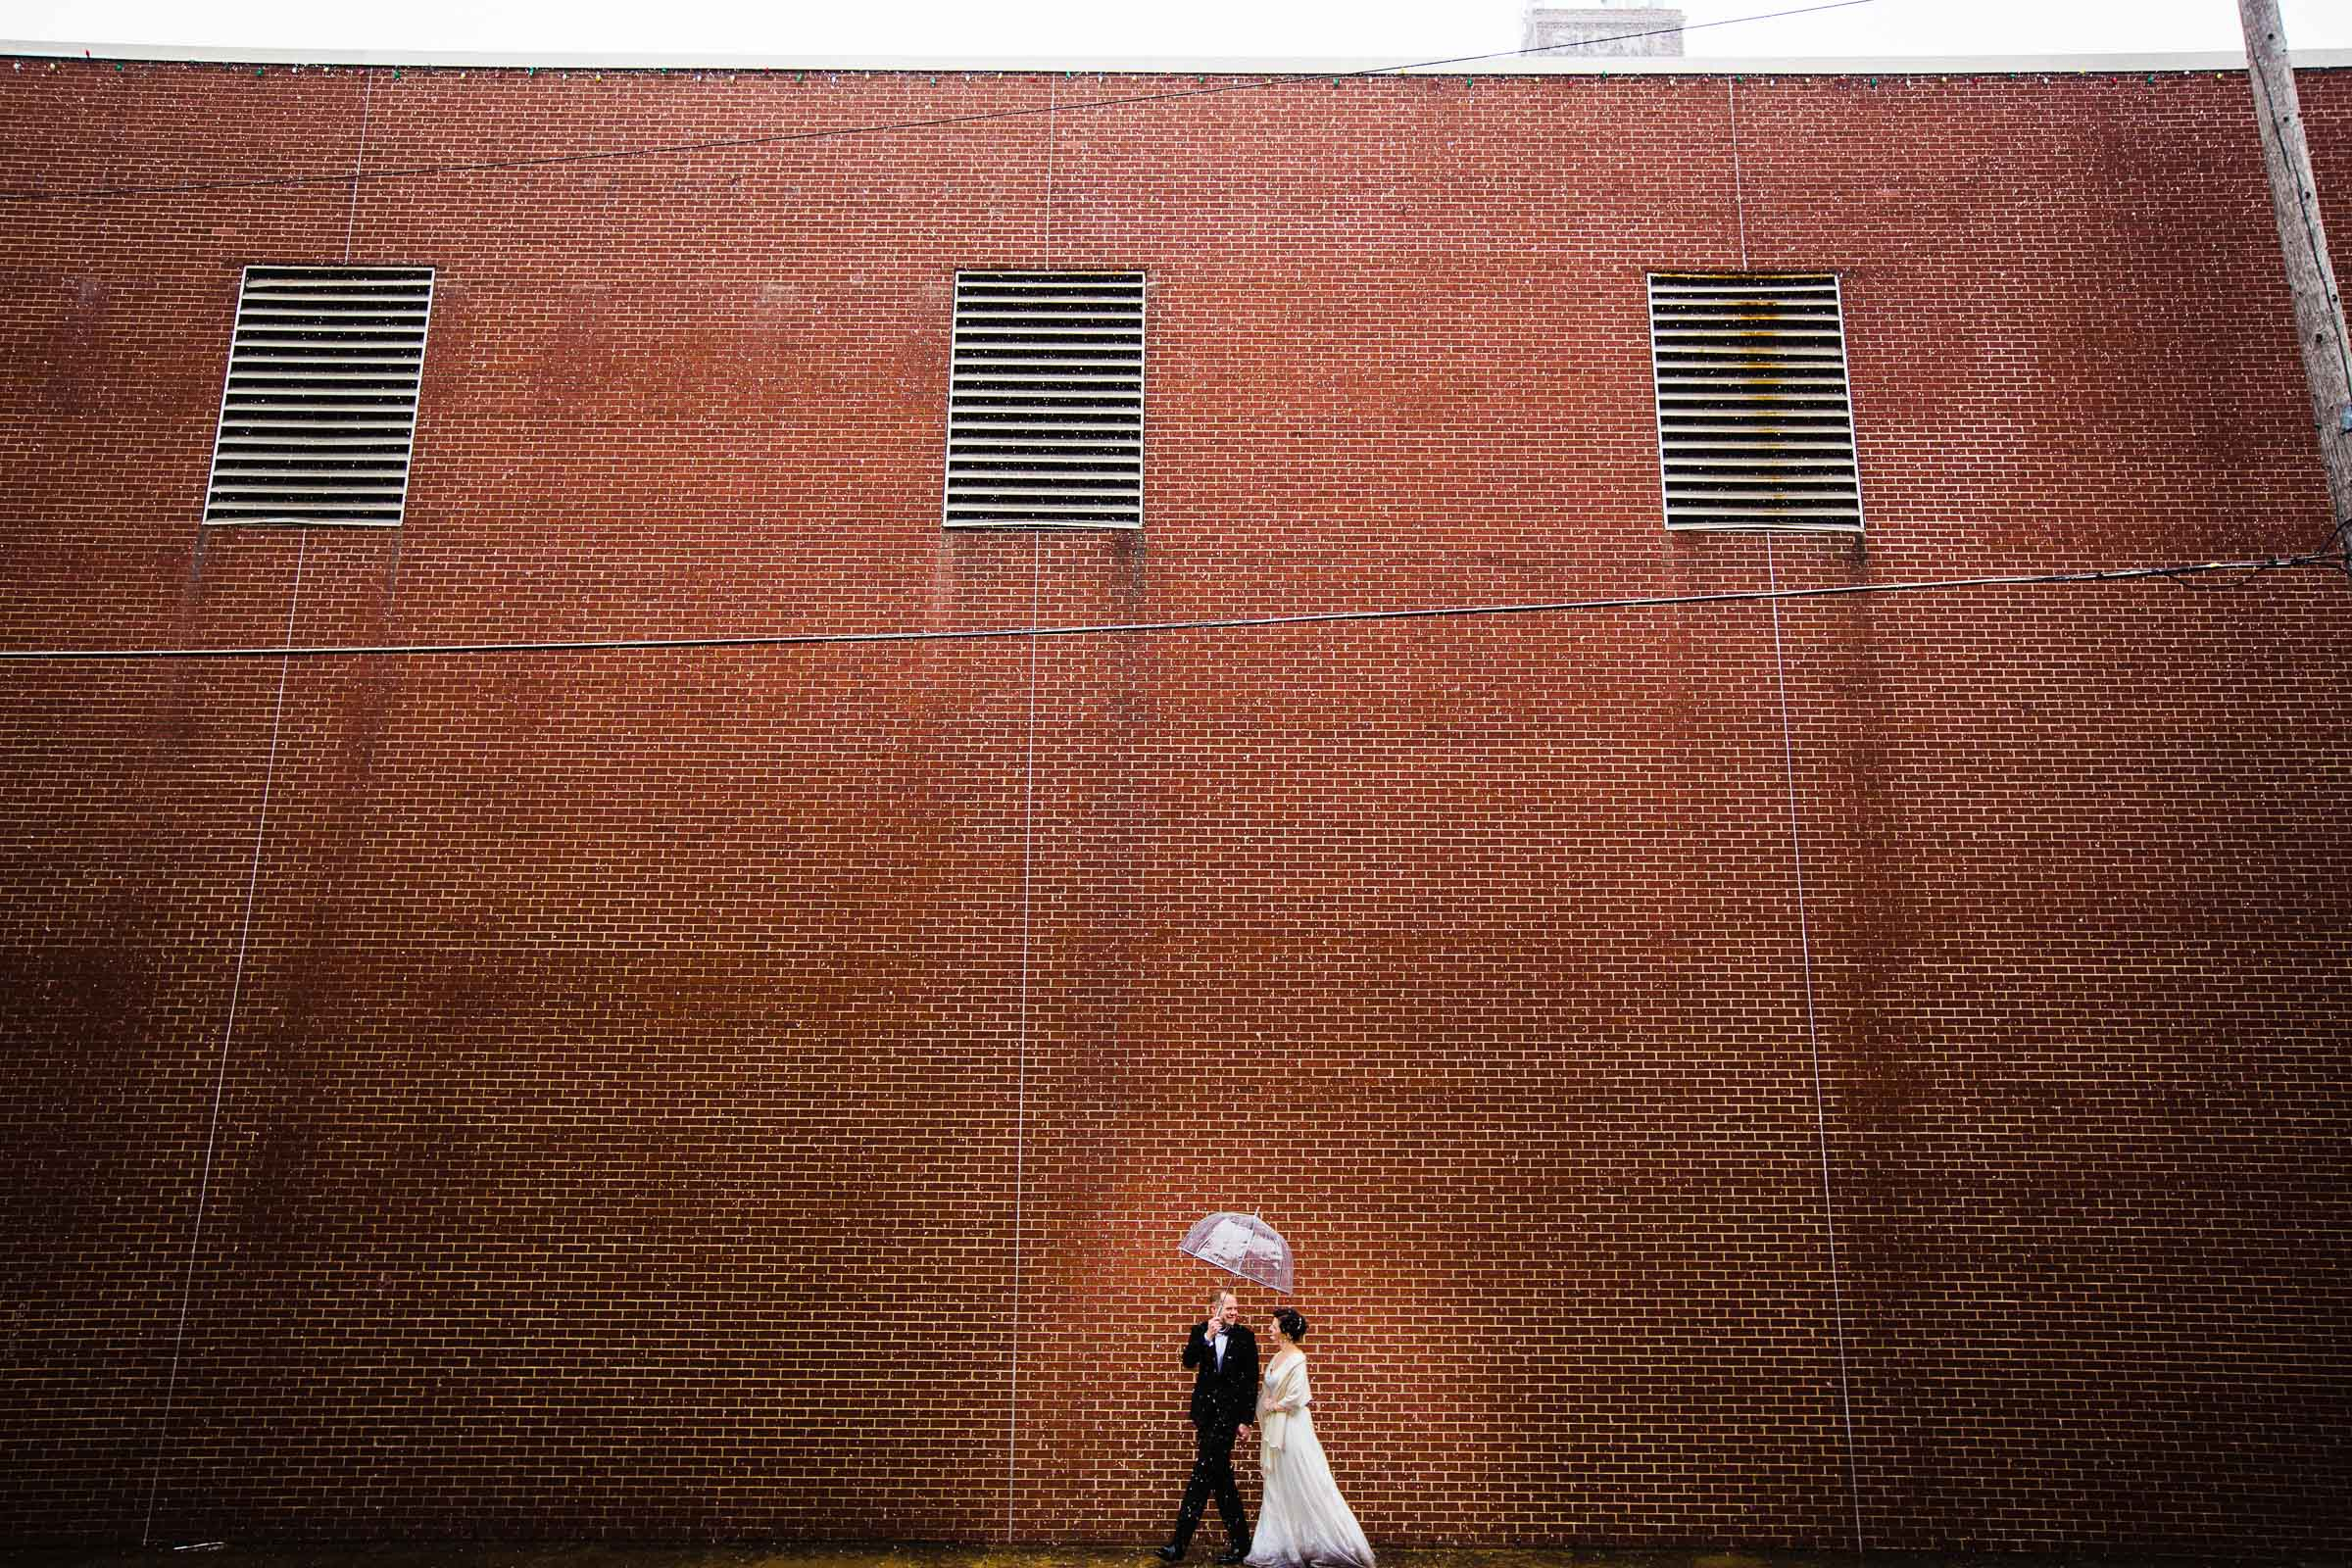 Bride and Groom exploring city backdrops after their Kansas City elopement ceremony at The Pilgrim Chapel.